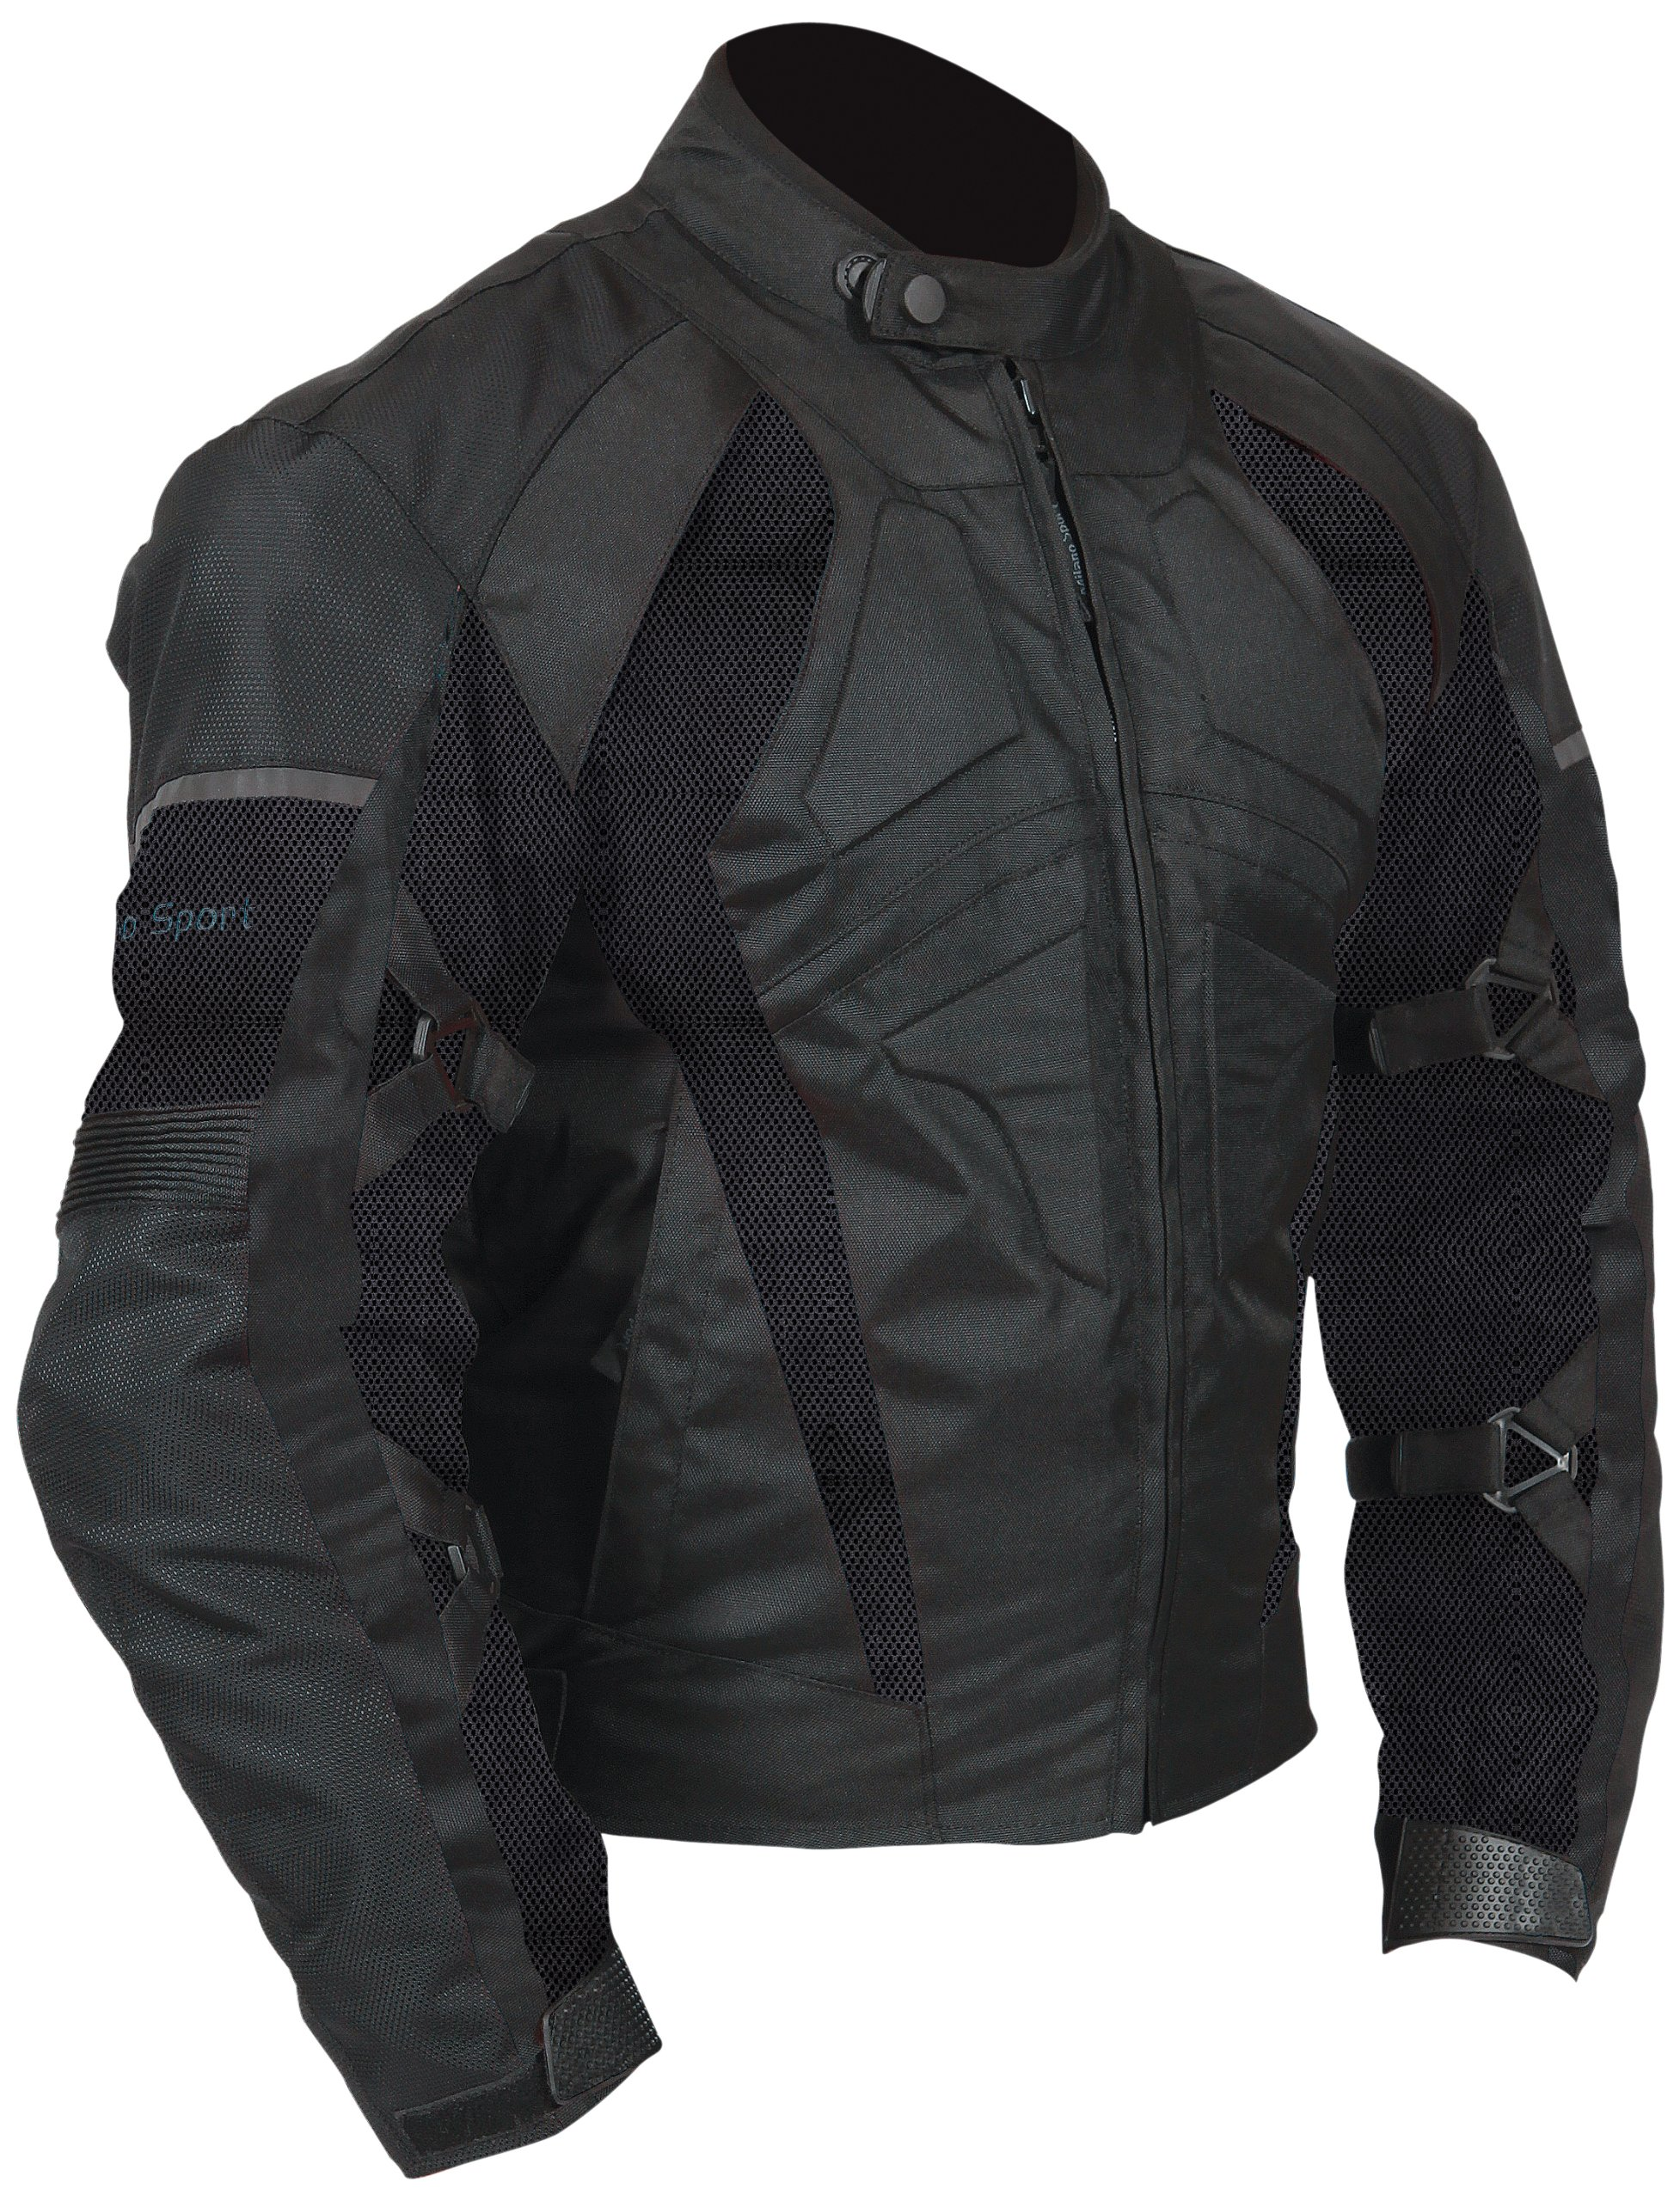 Milano Sport Gamma Motorcycle Air Jacket with Black Mesh Panel (Black, Large) by Milano Sport (Image #1)